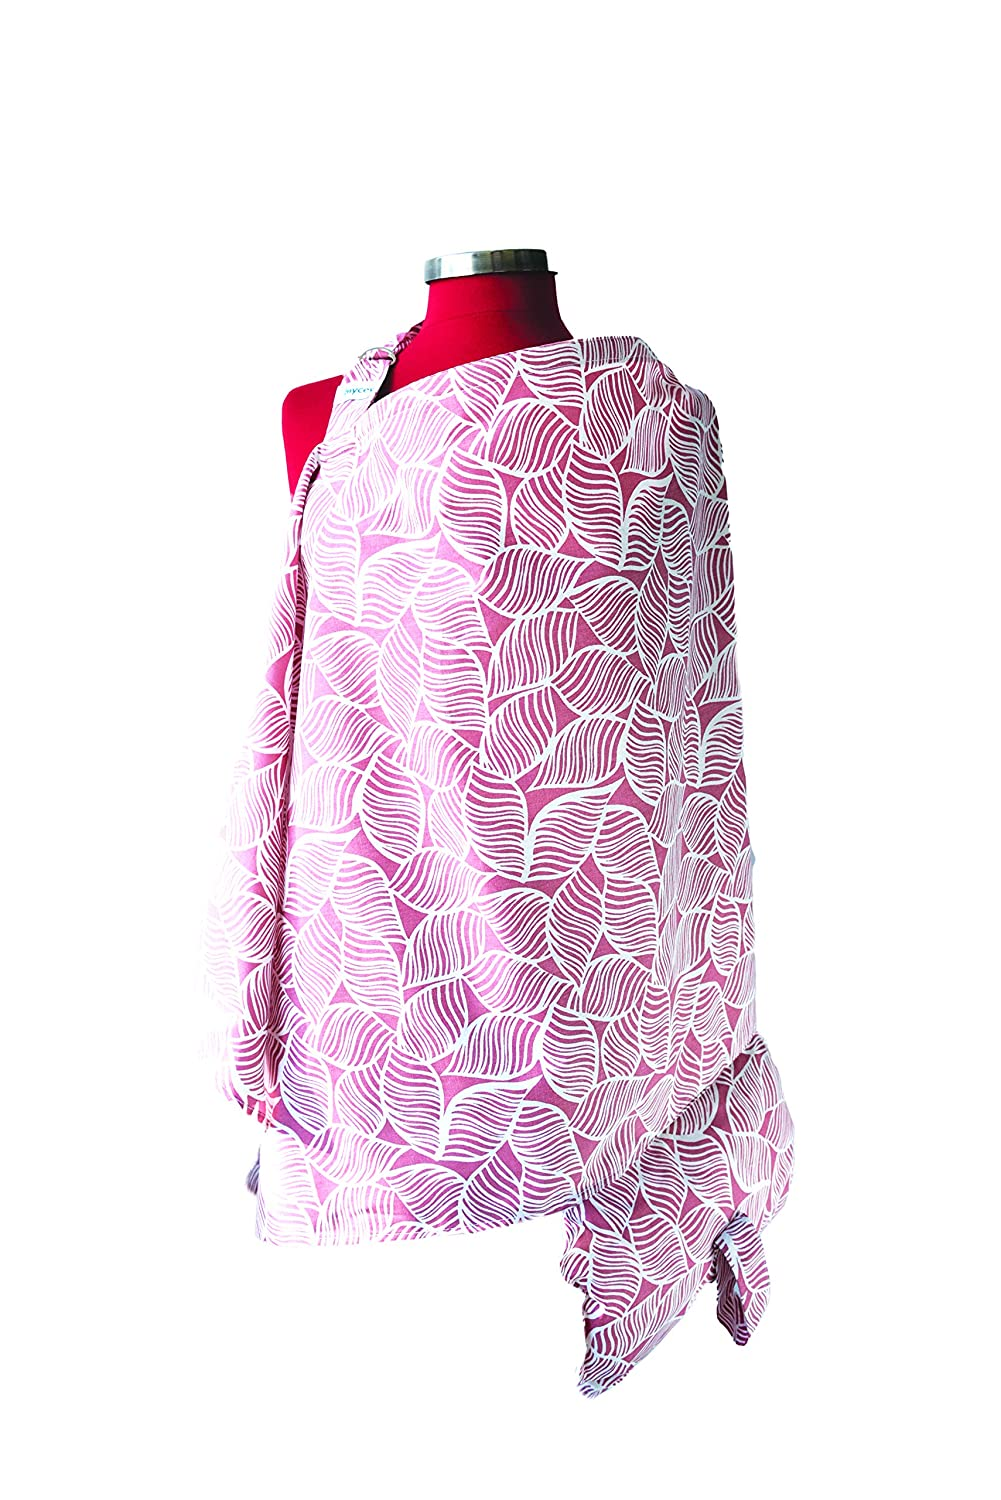 Nursing Apron for Breastfeeding Privacy MYCey Baby Nursing Cover with Pillow Soft 100/% Cotton Parterre